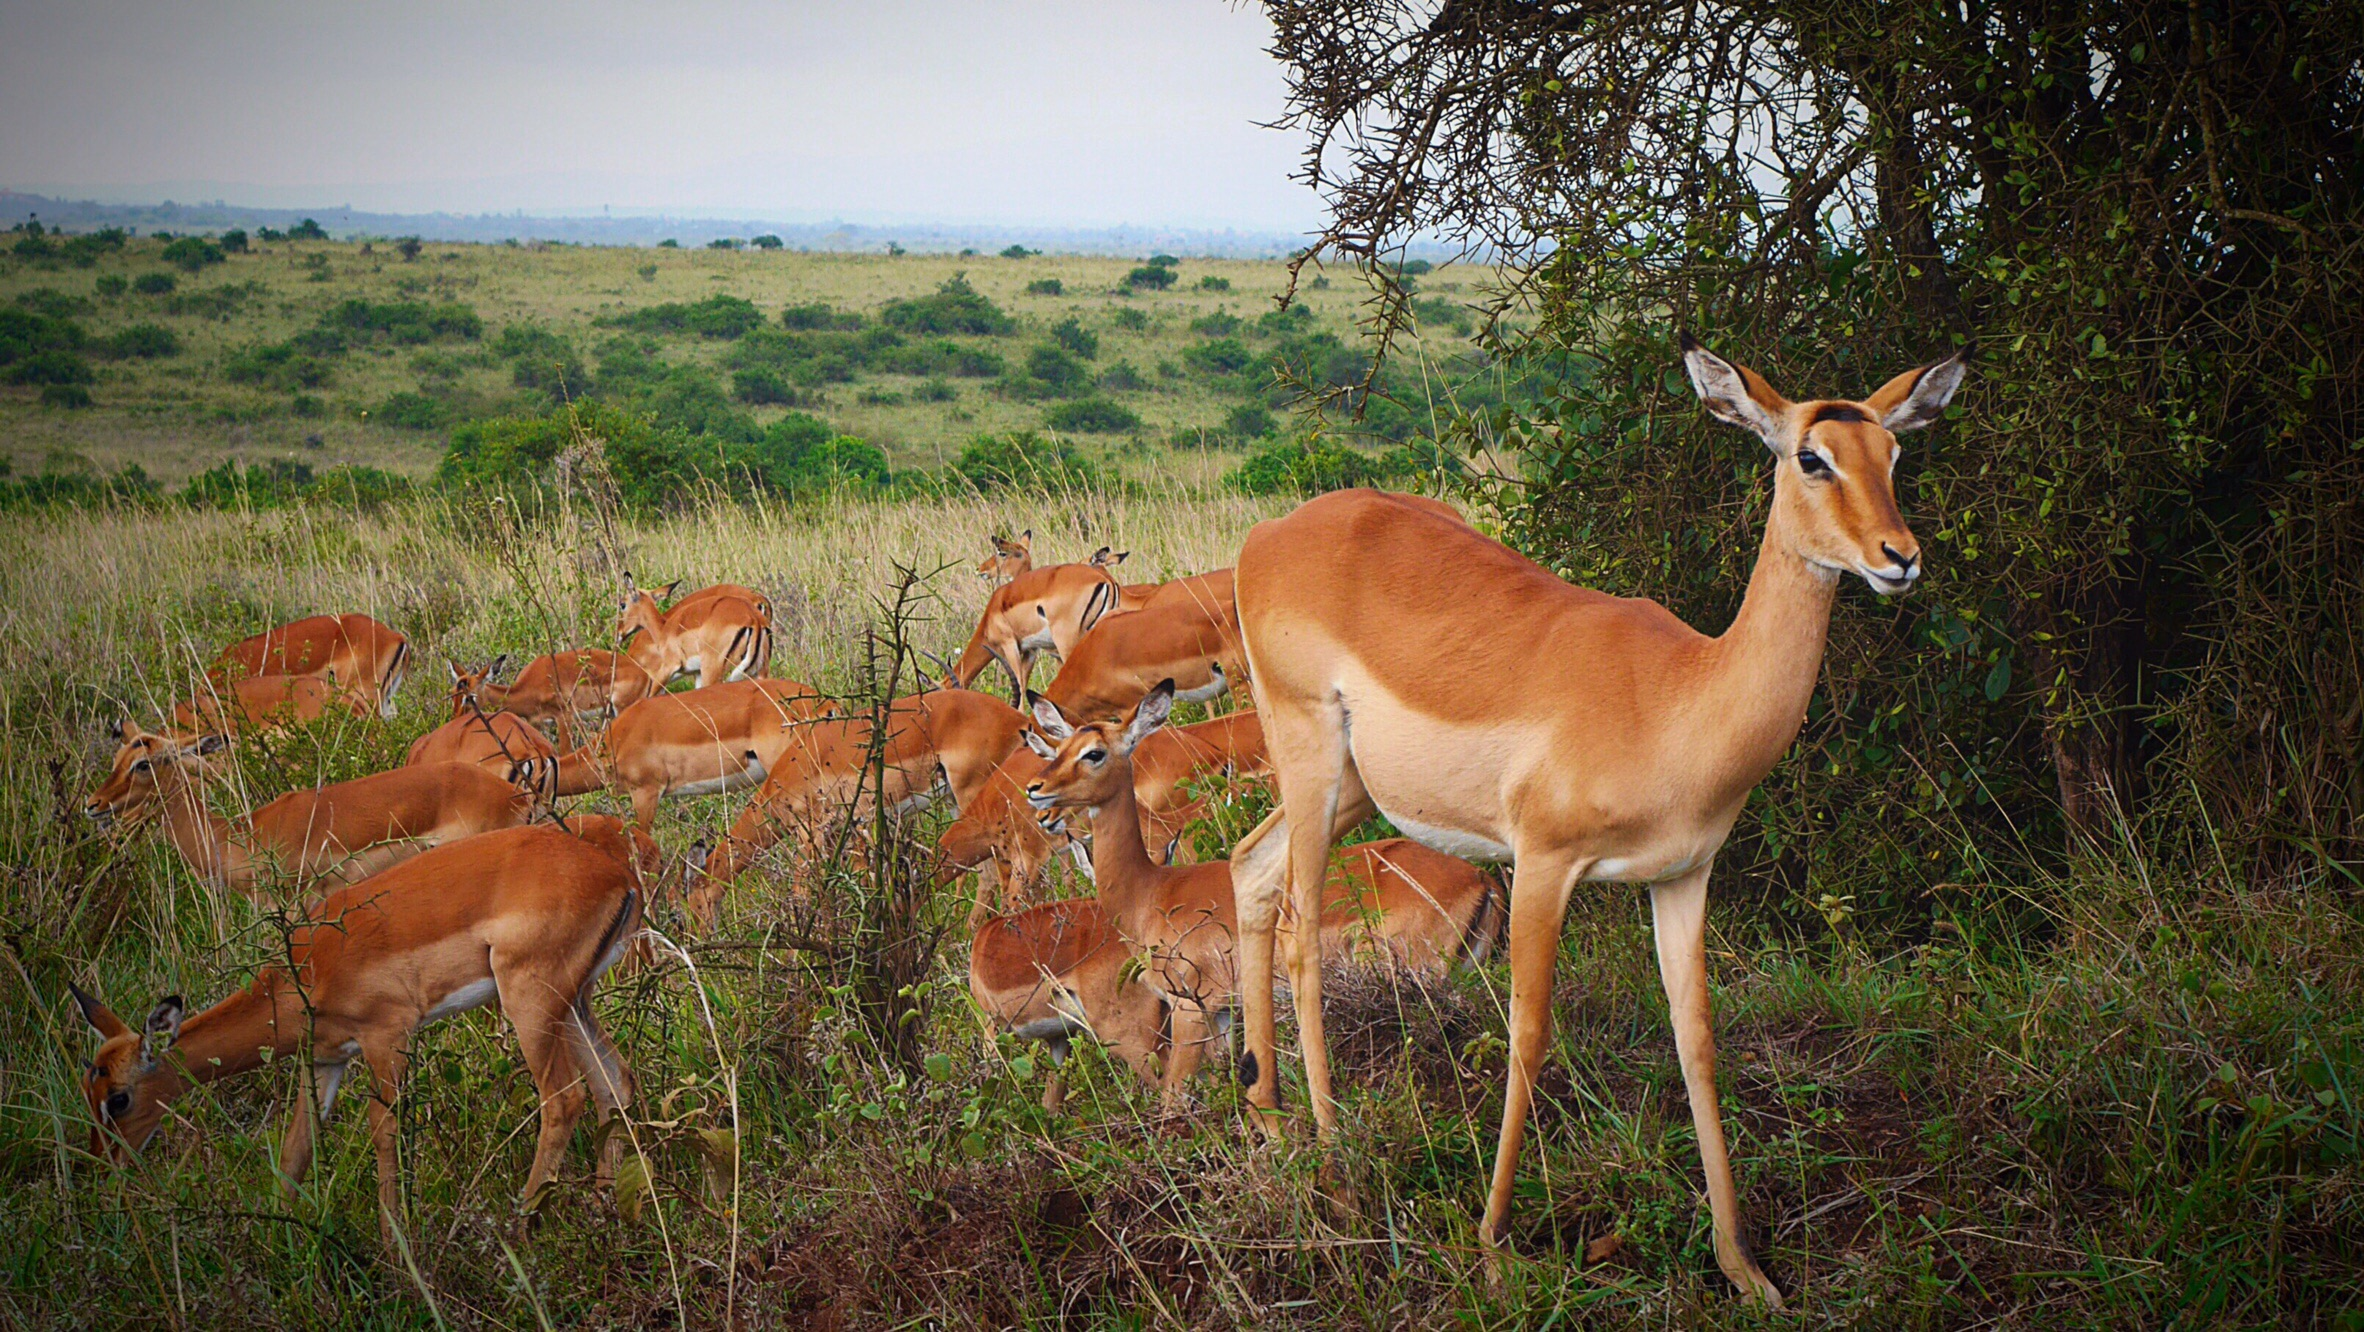 Antelopes at Nairobi National Park